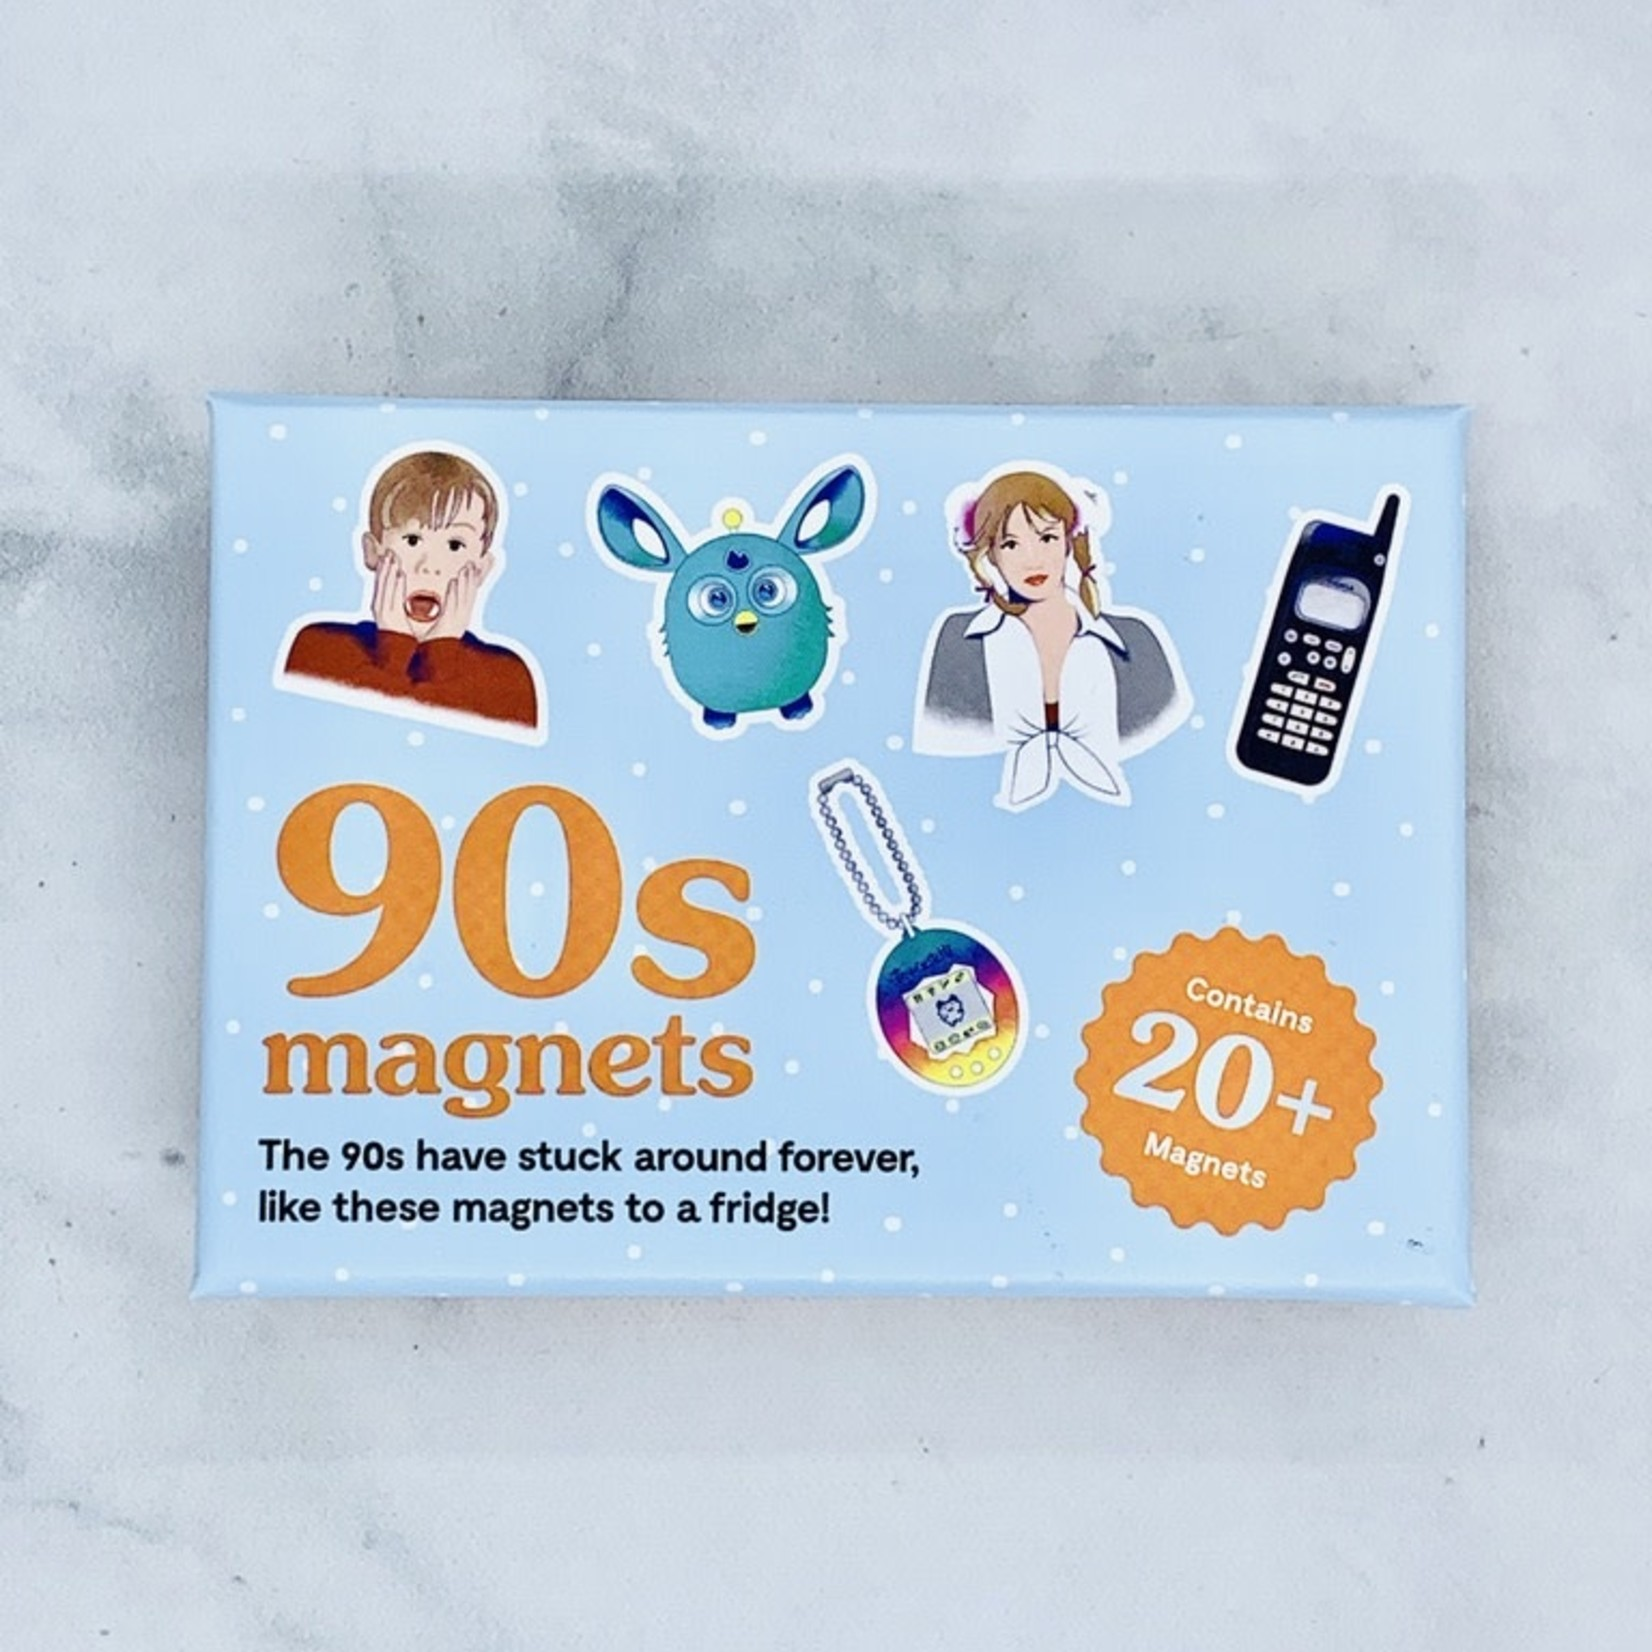 90s Magnets